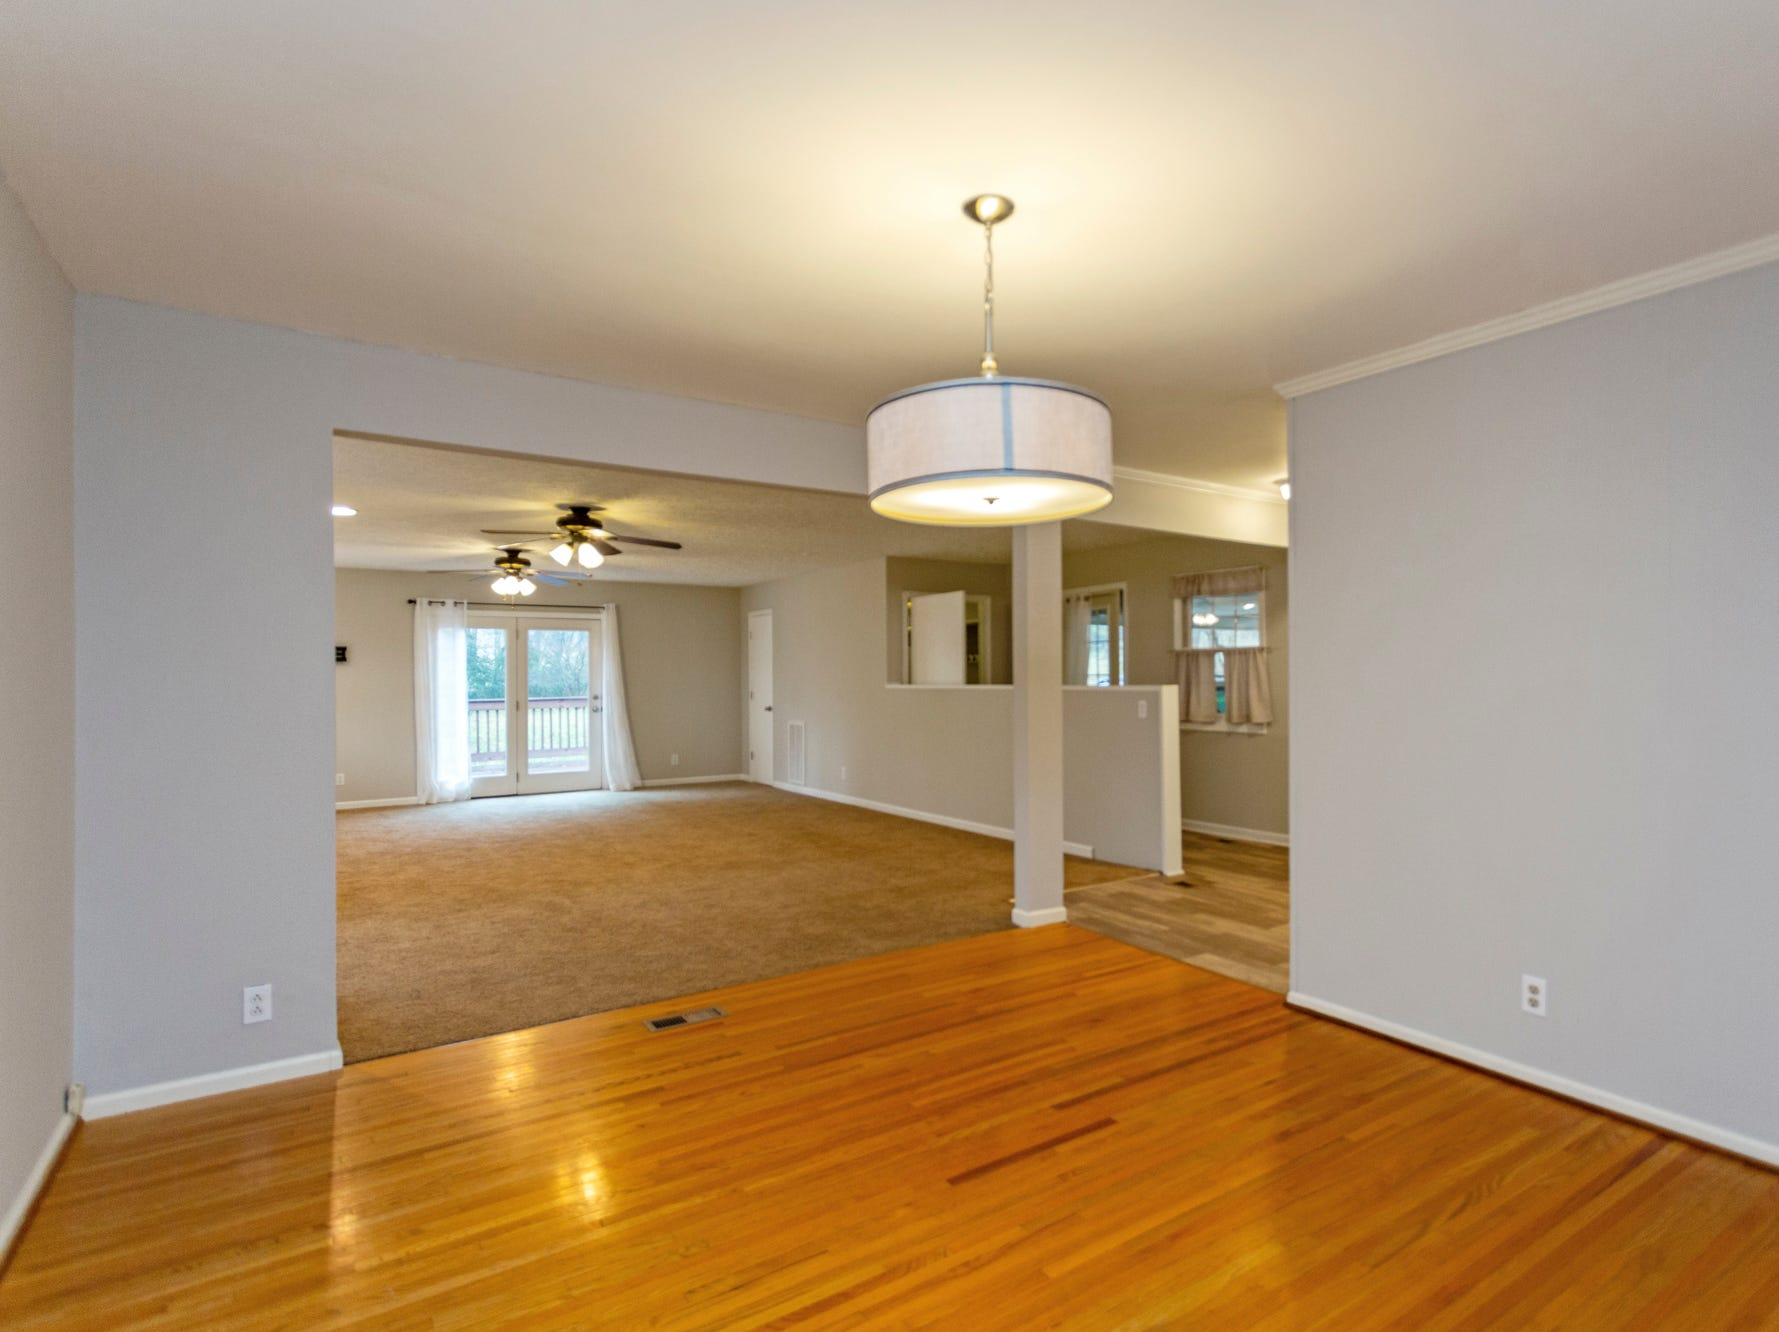 The dining and living space in the home for sale at 3038 Wilson Pike is empty, which can make it hard for potential home buyers to see how it would look furnished.